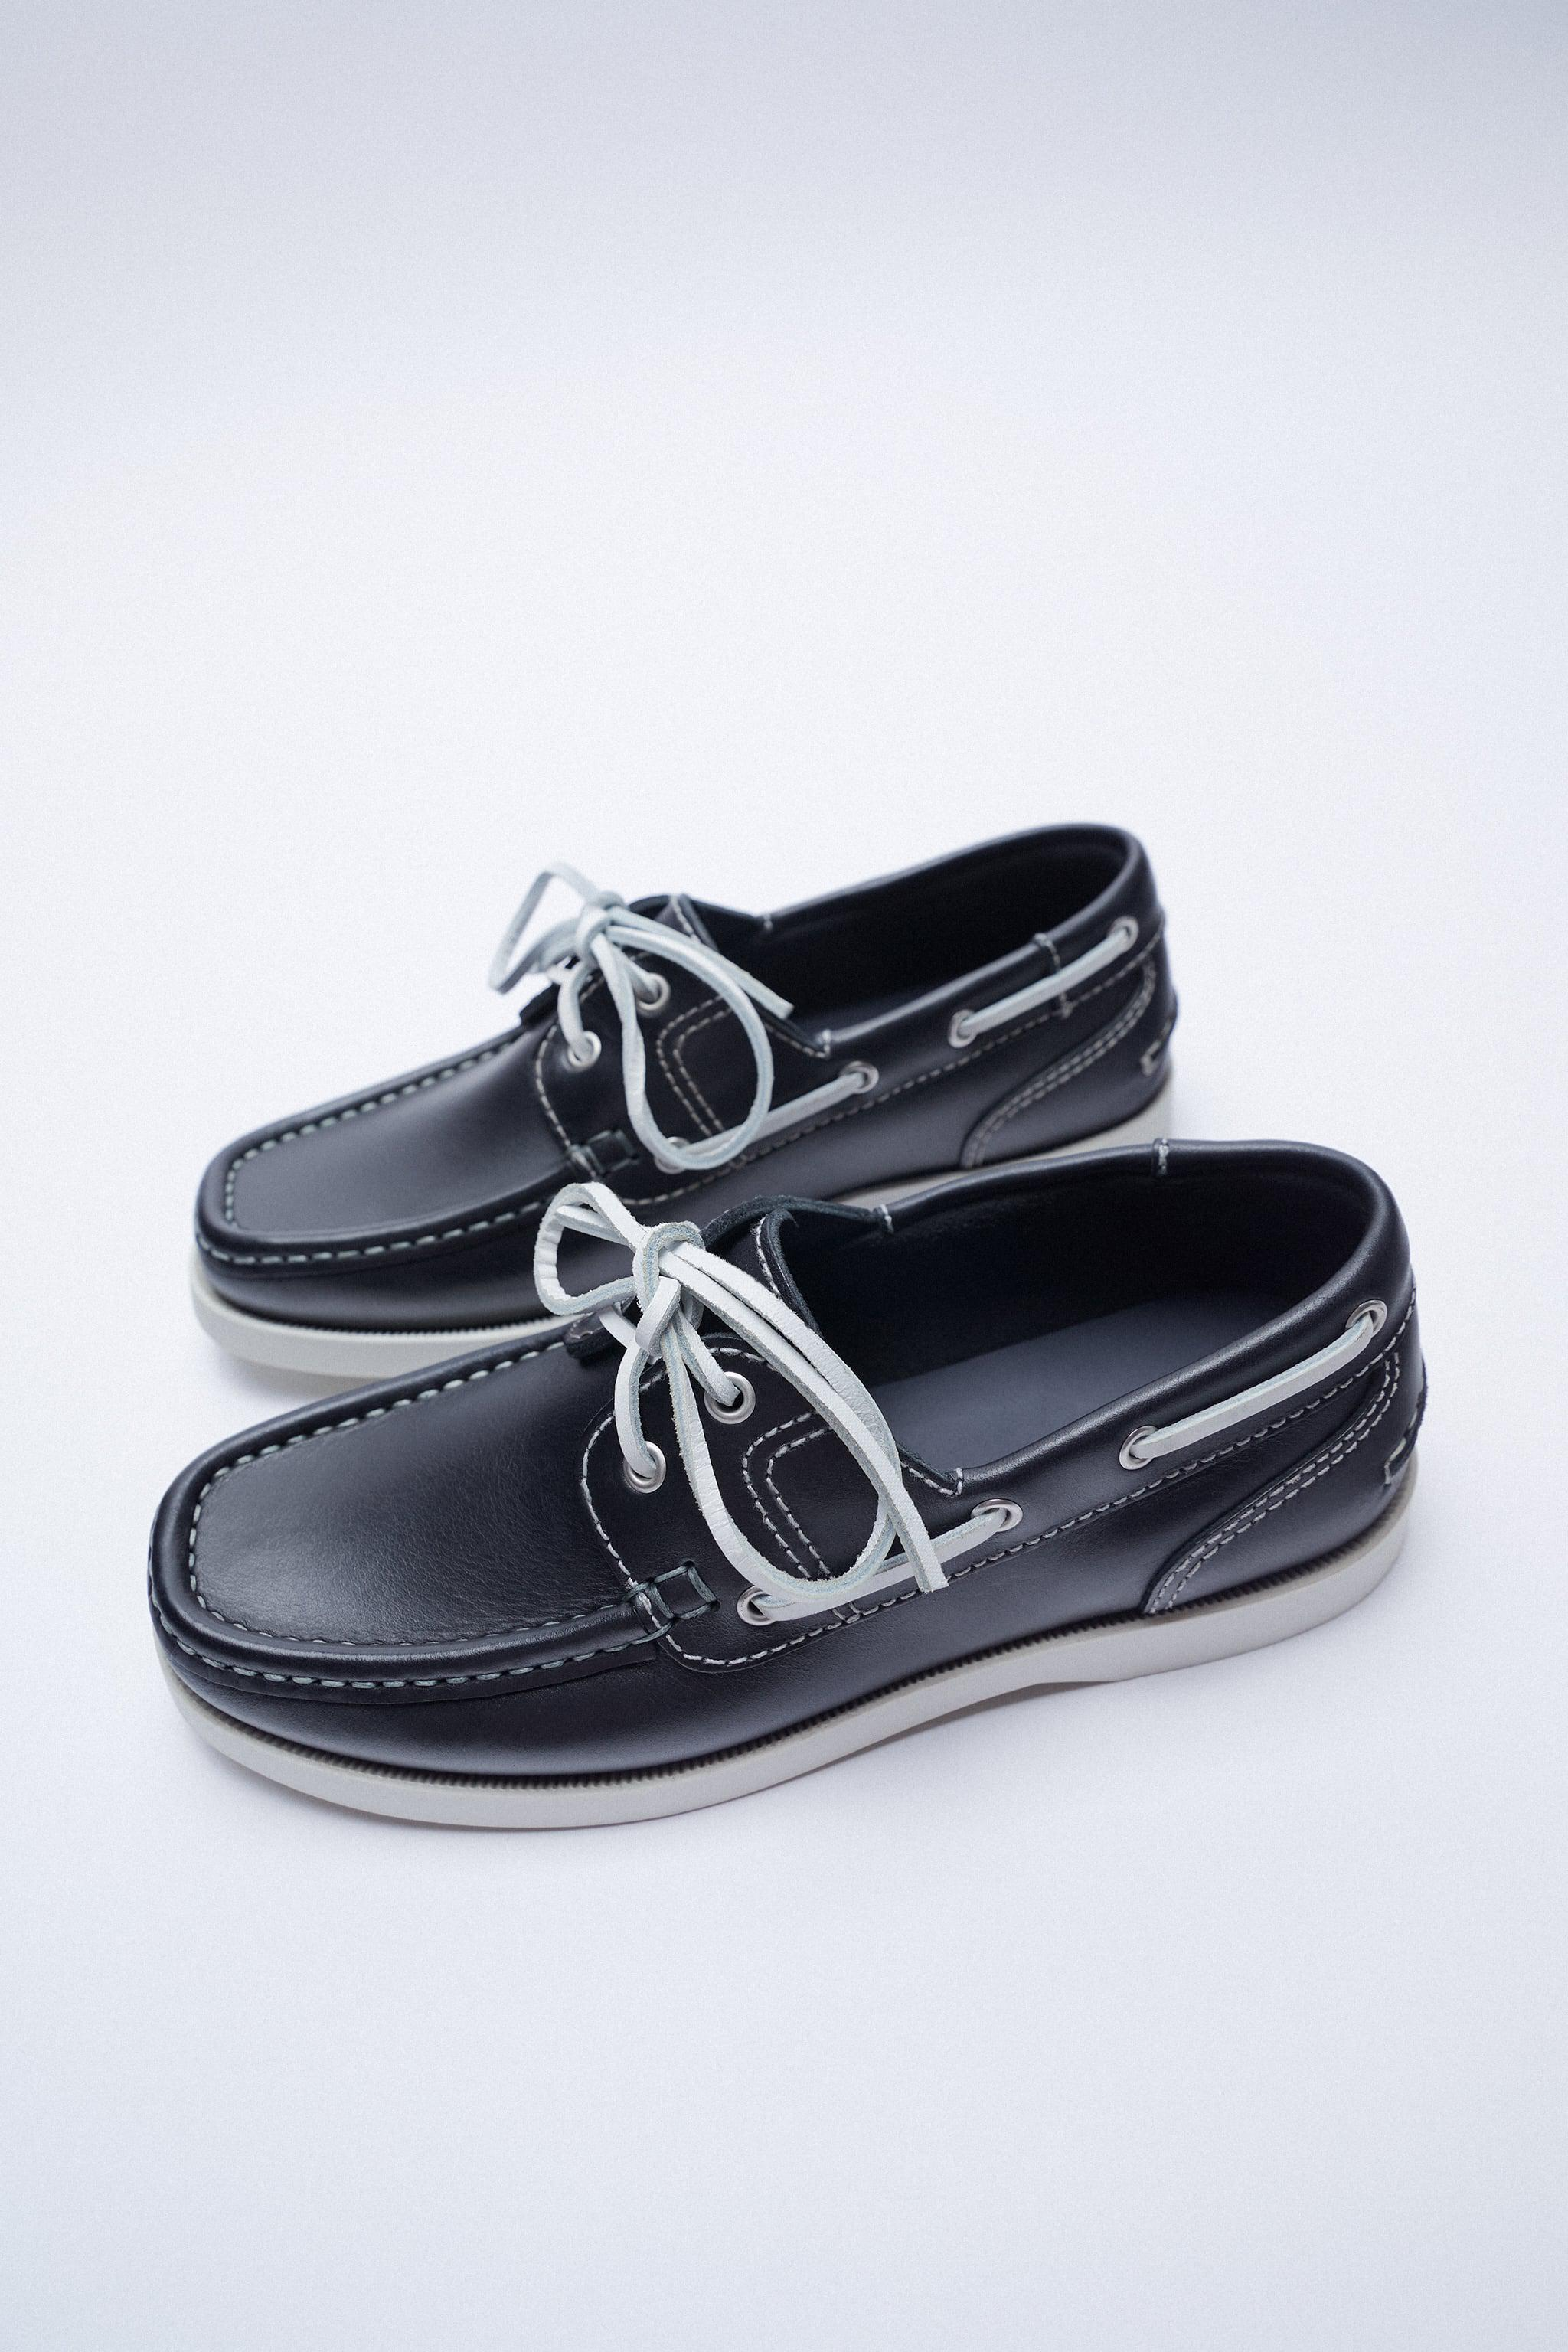 LOW HEEL LEATHER BOAT SHOES 3